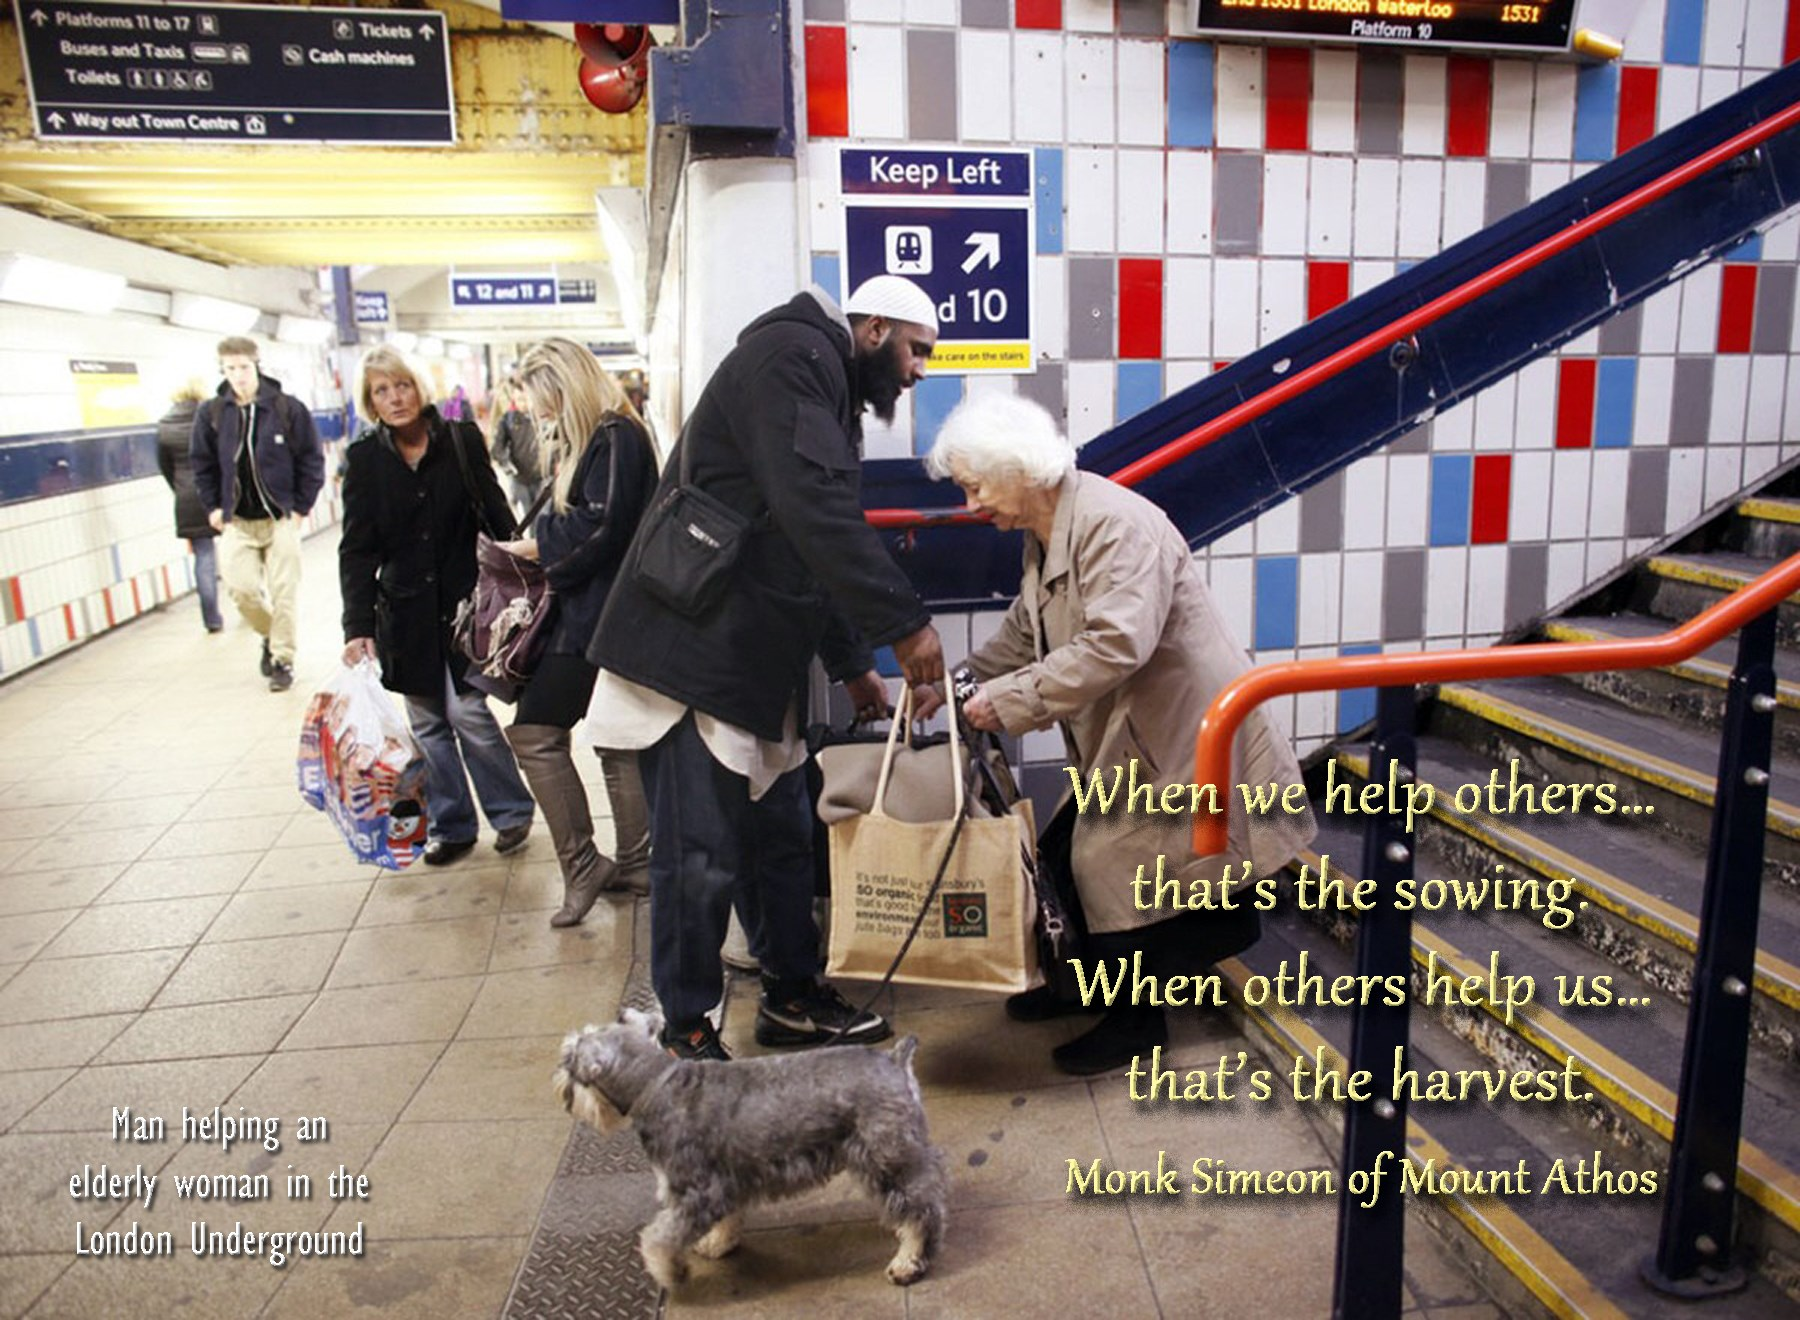 00 man helping old lady in the london underground simeon of mt athos 280815